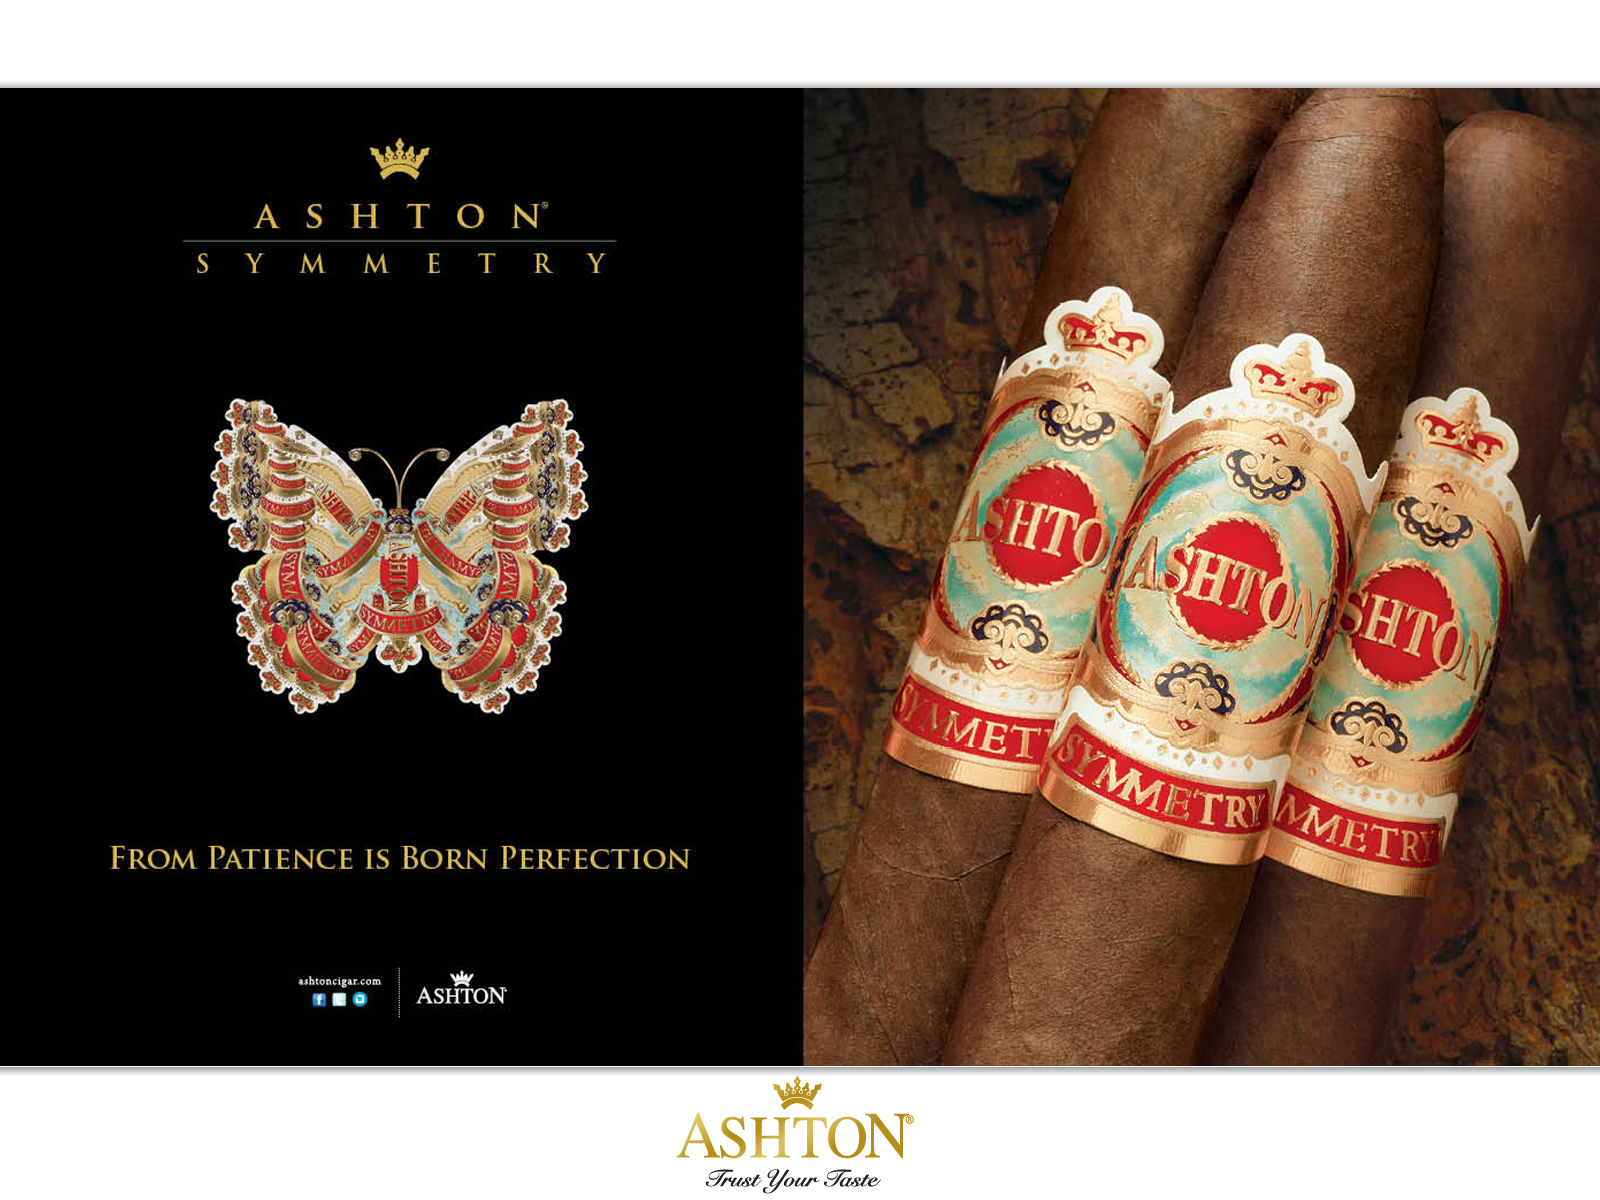 ashton_cigars_advertising_campaign_cigarmonkeys_2.jpg